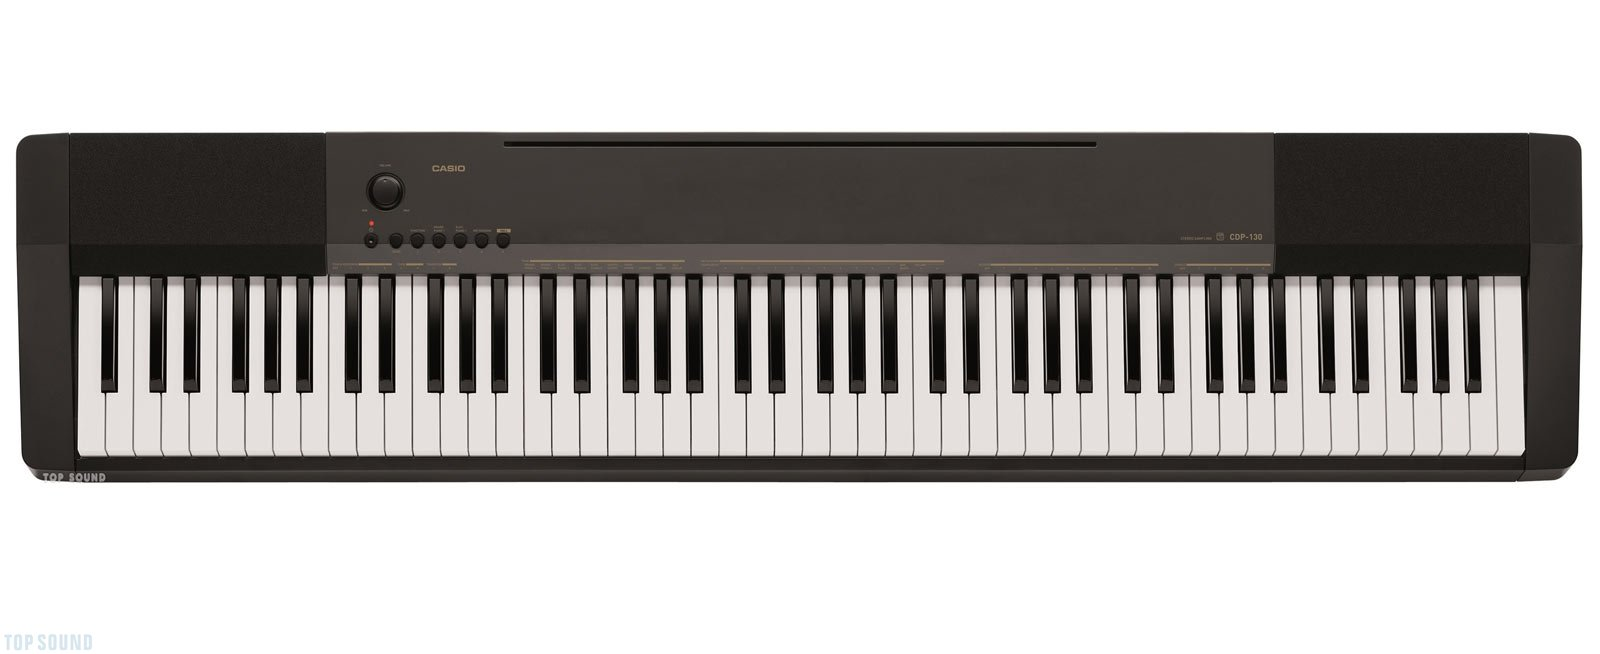 comprar casio piano digital cdp 130